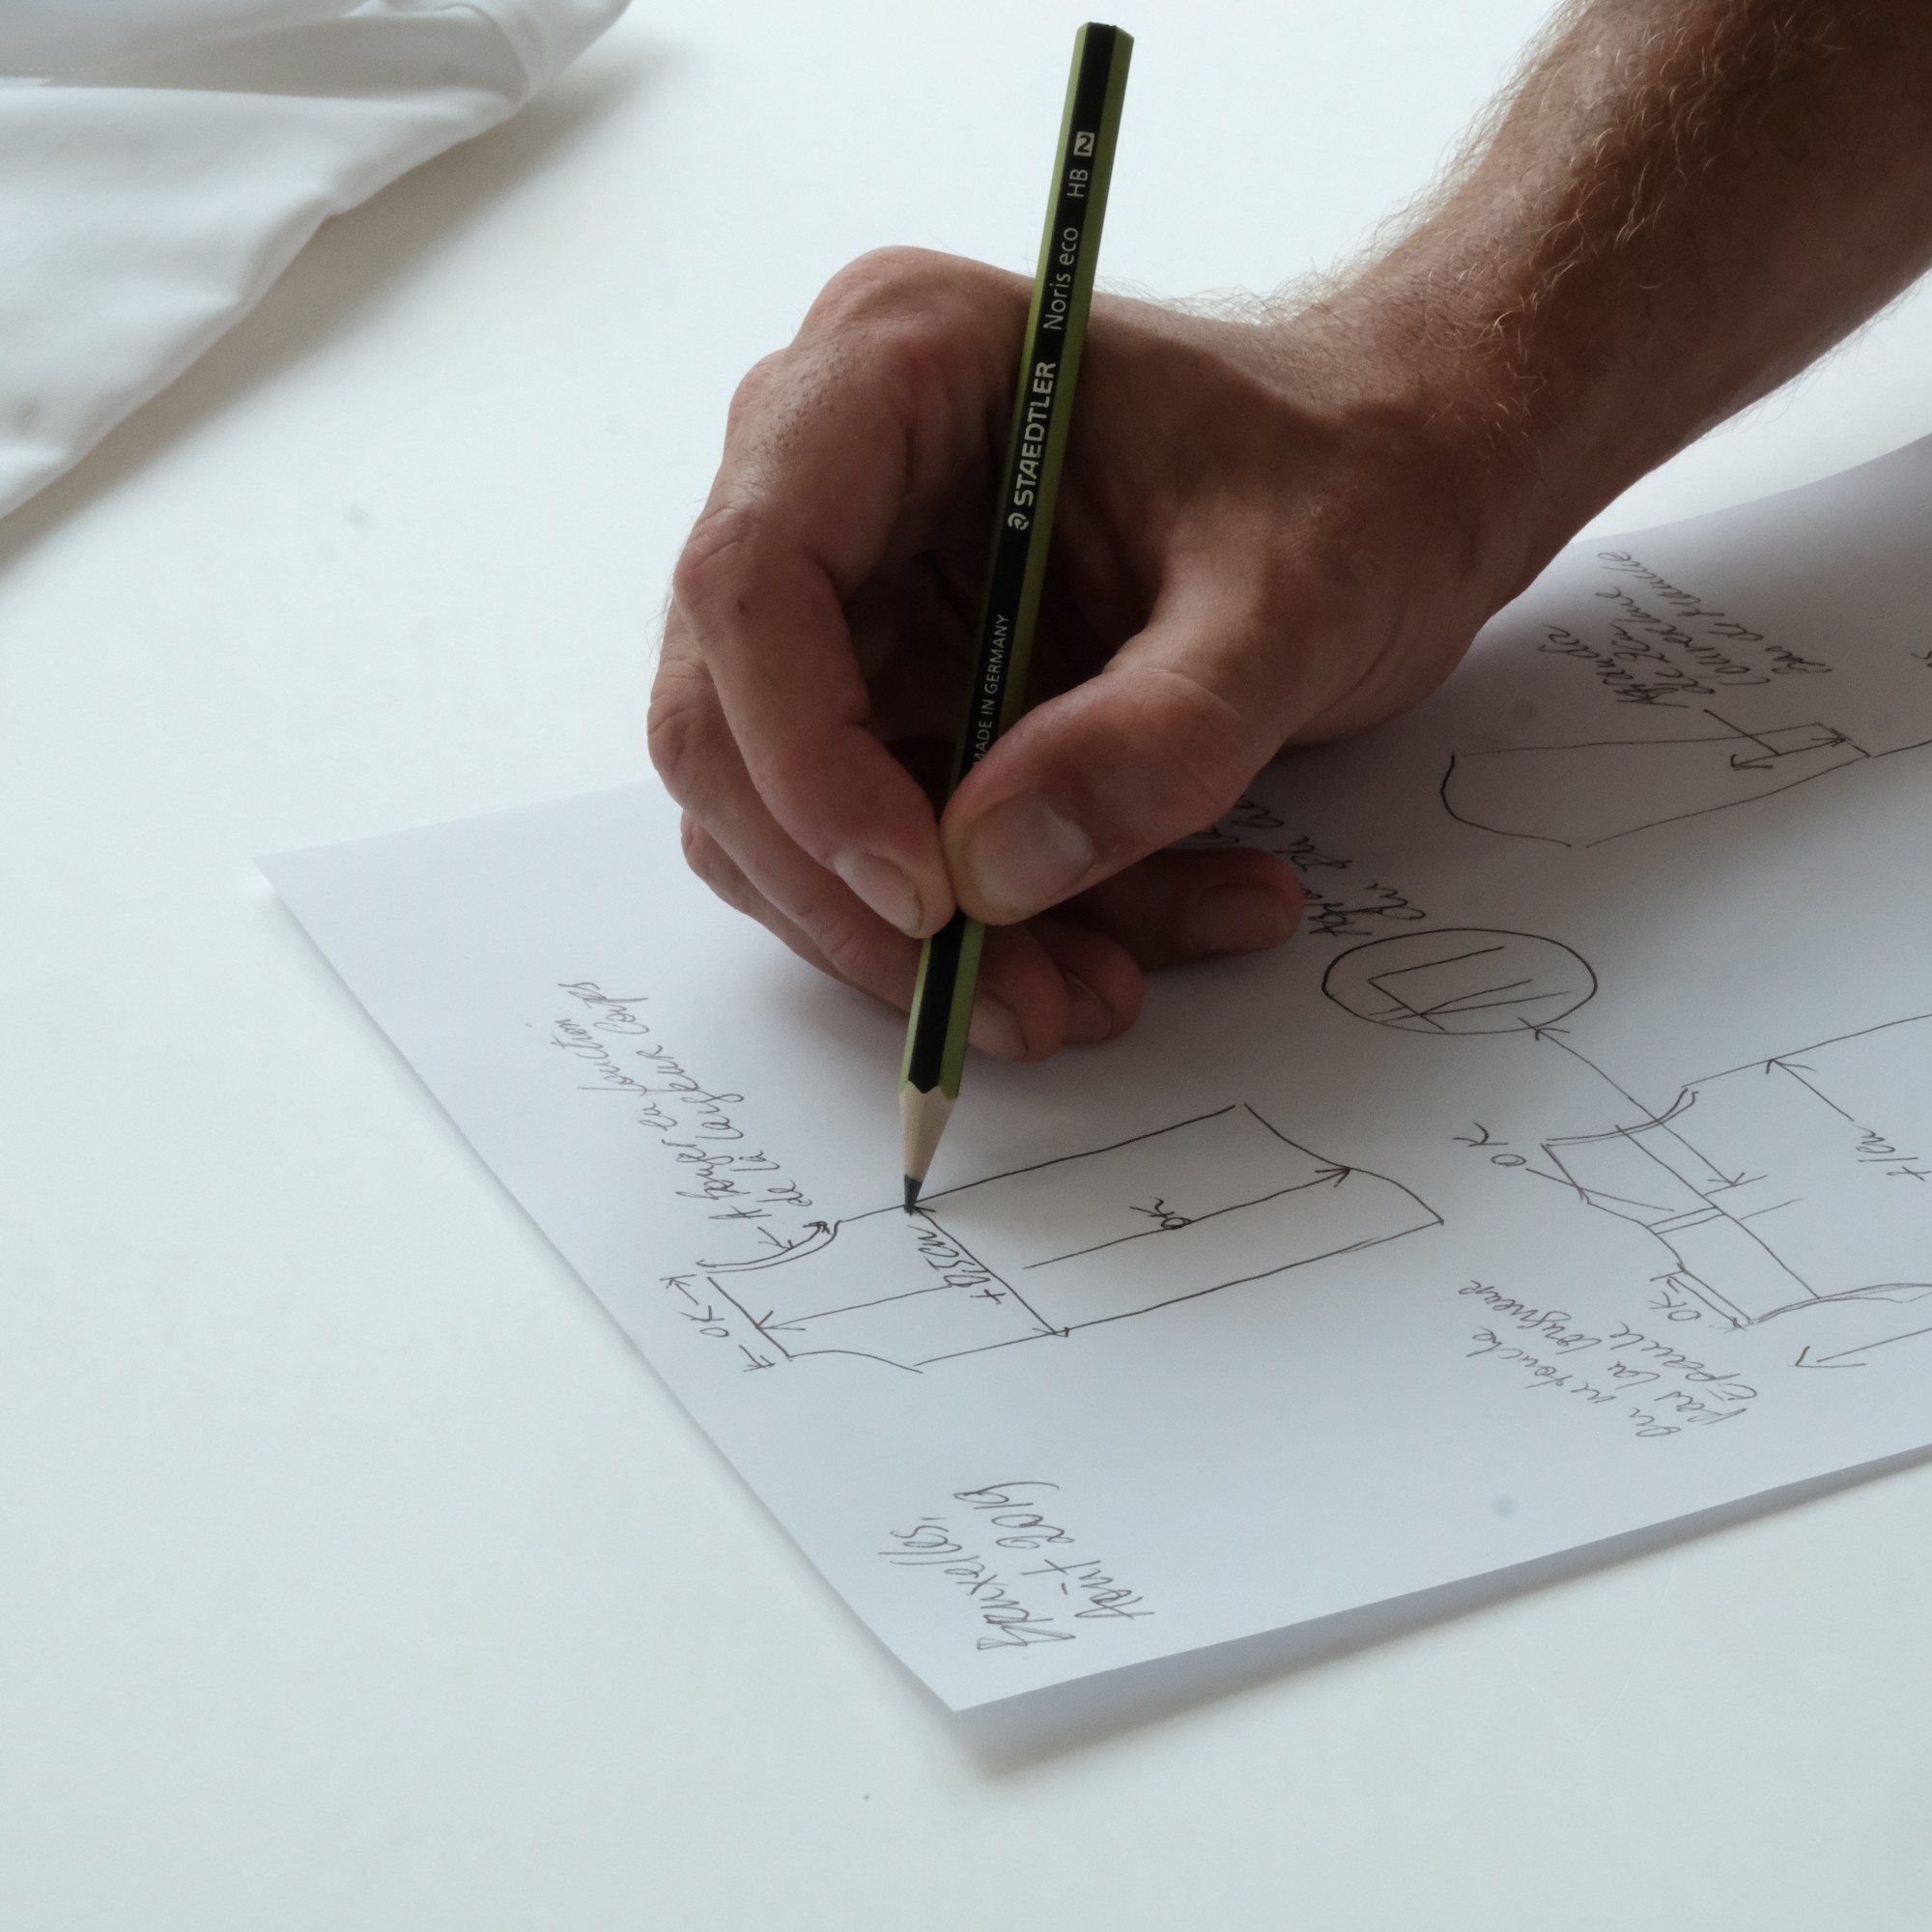 A designer sketching a drawing on paper.